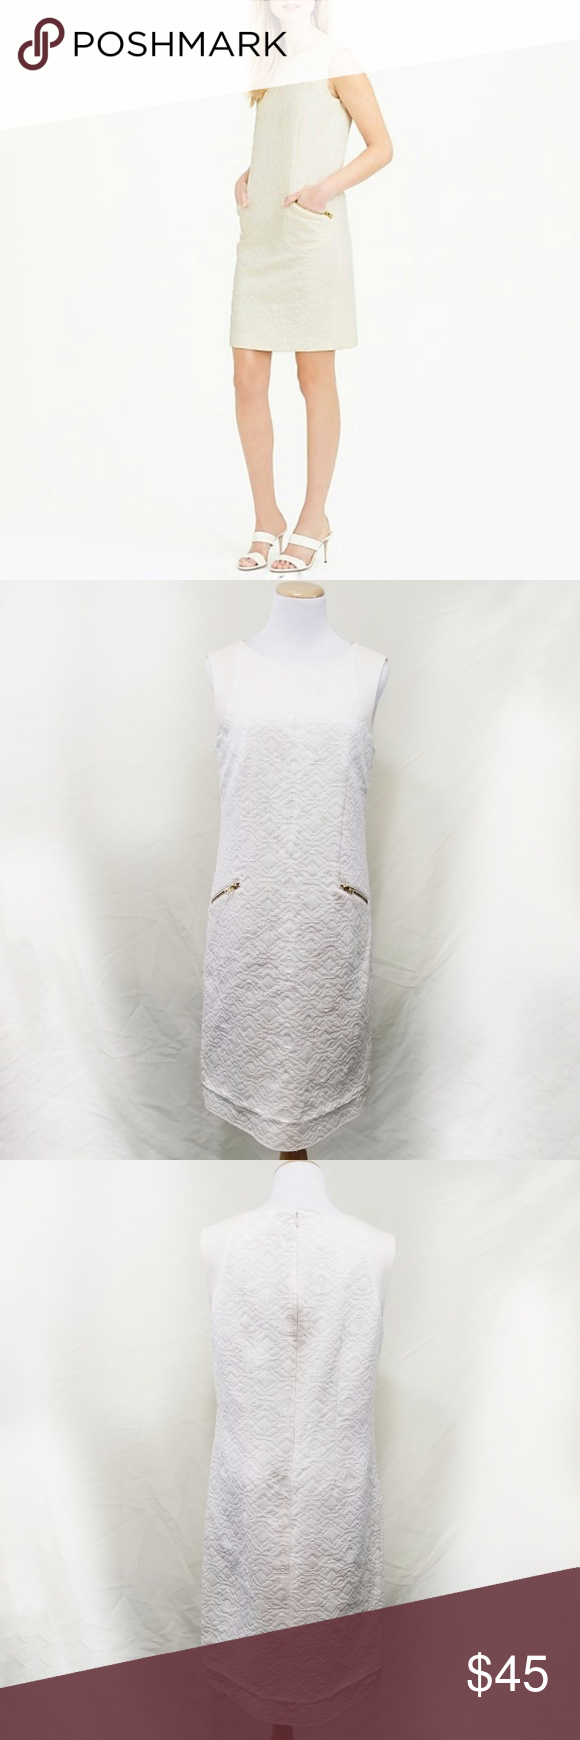 203ffd71eb7 J. Crew tall jaquard shift dress ivory cream zip S J. Crew tall jaquard shift  dress. Ivory   cream diamond textured jaquard fabric. Double gold zipper ...